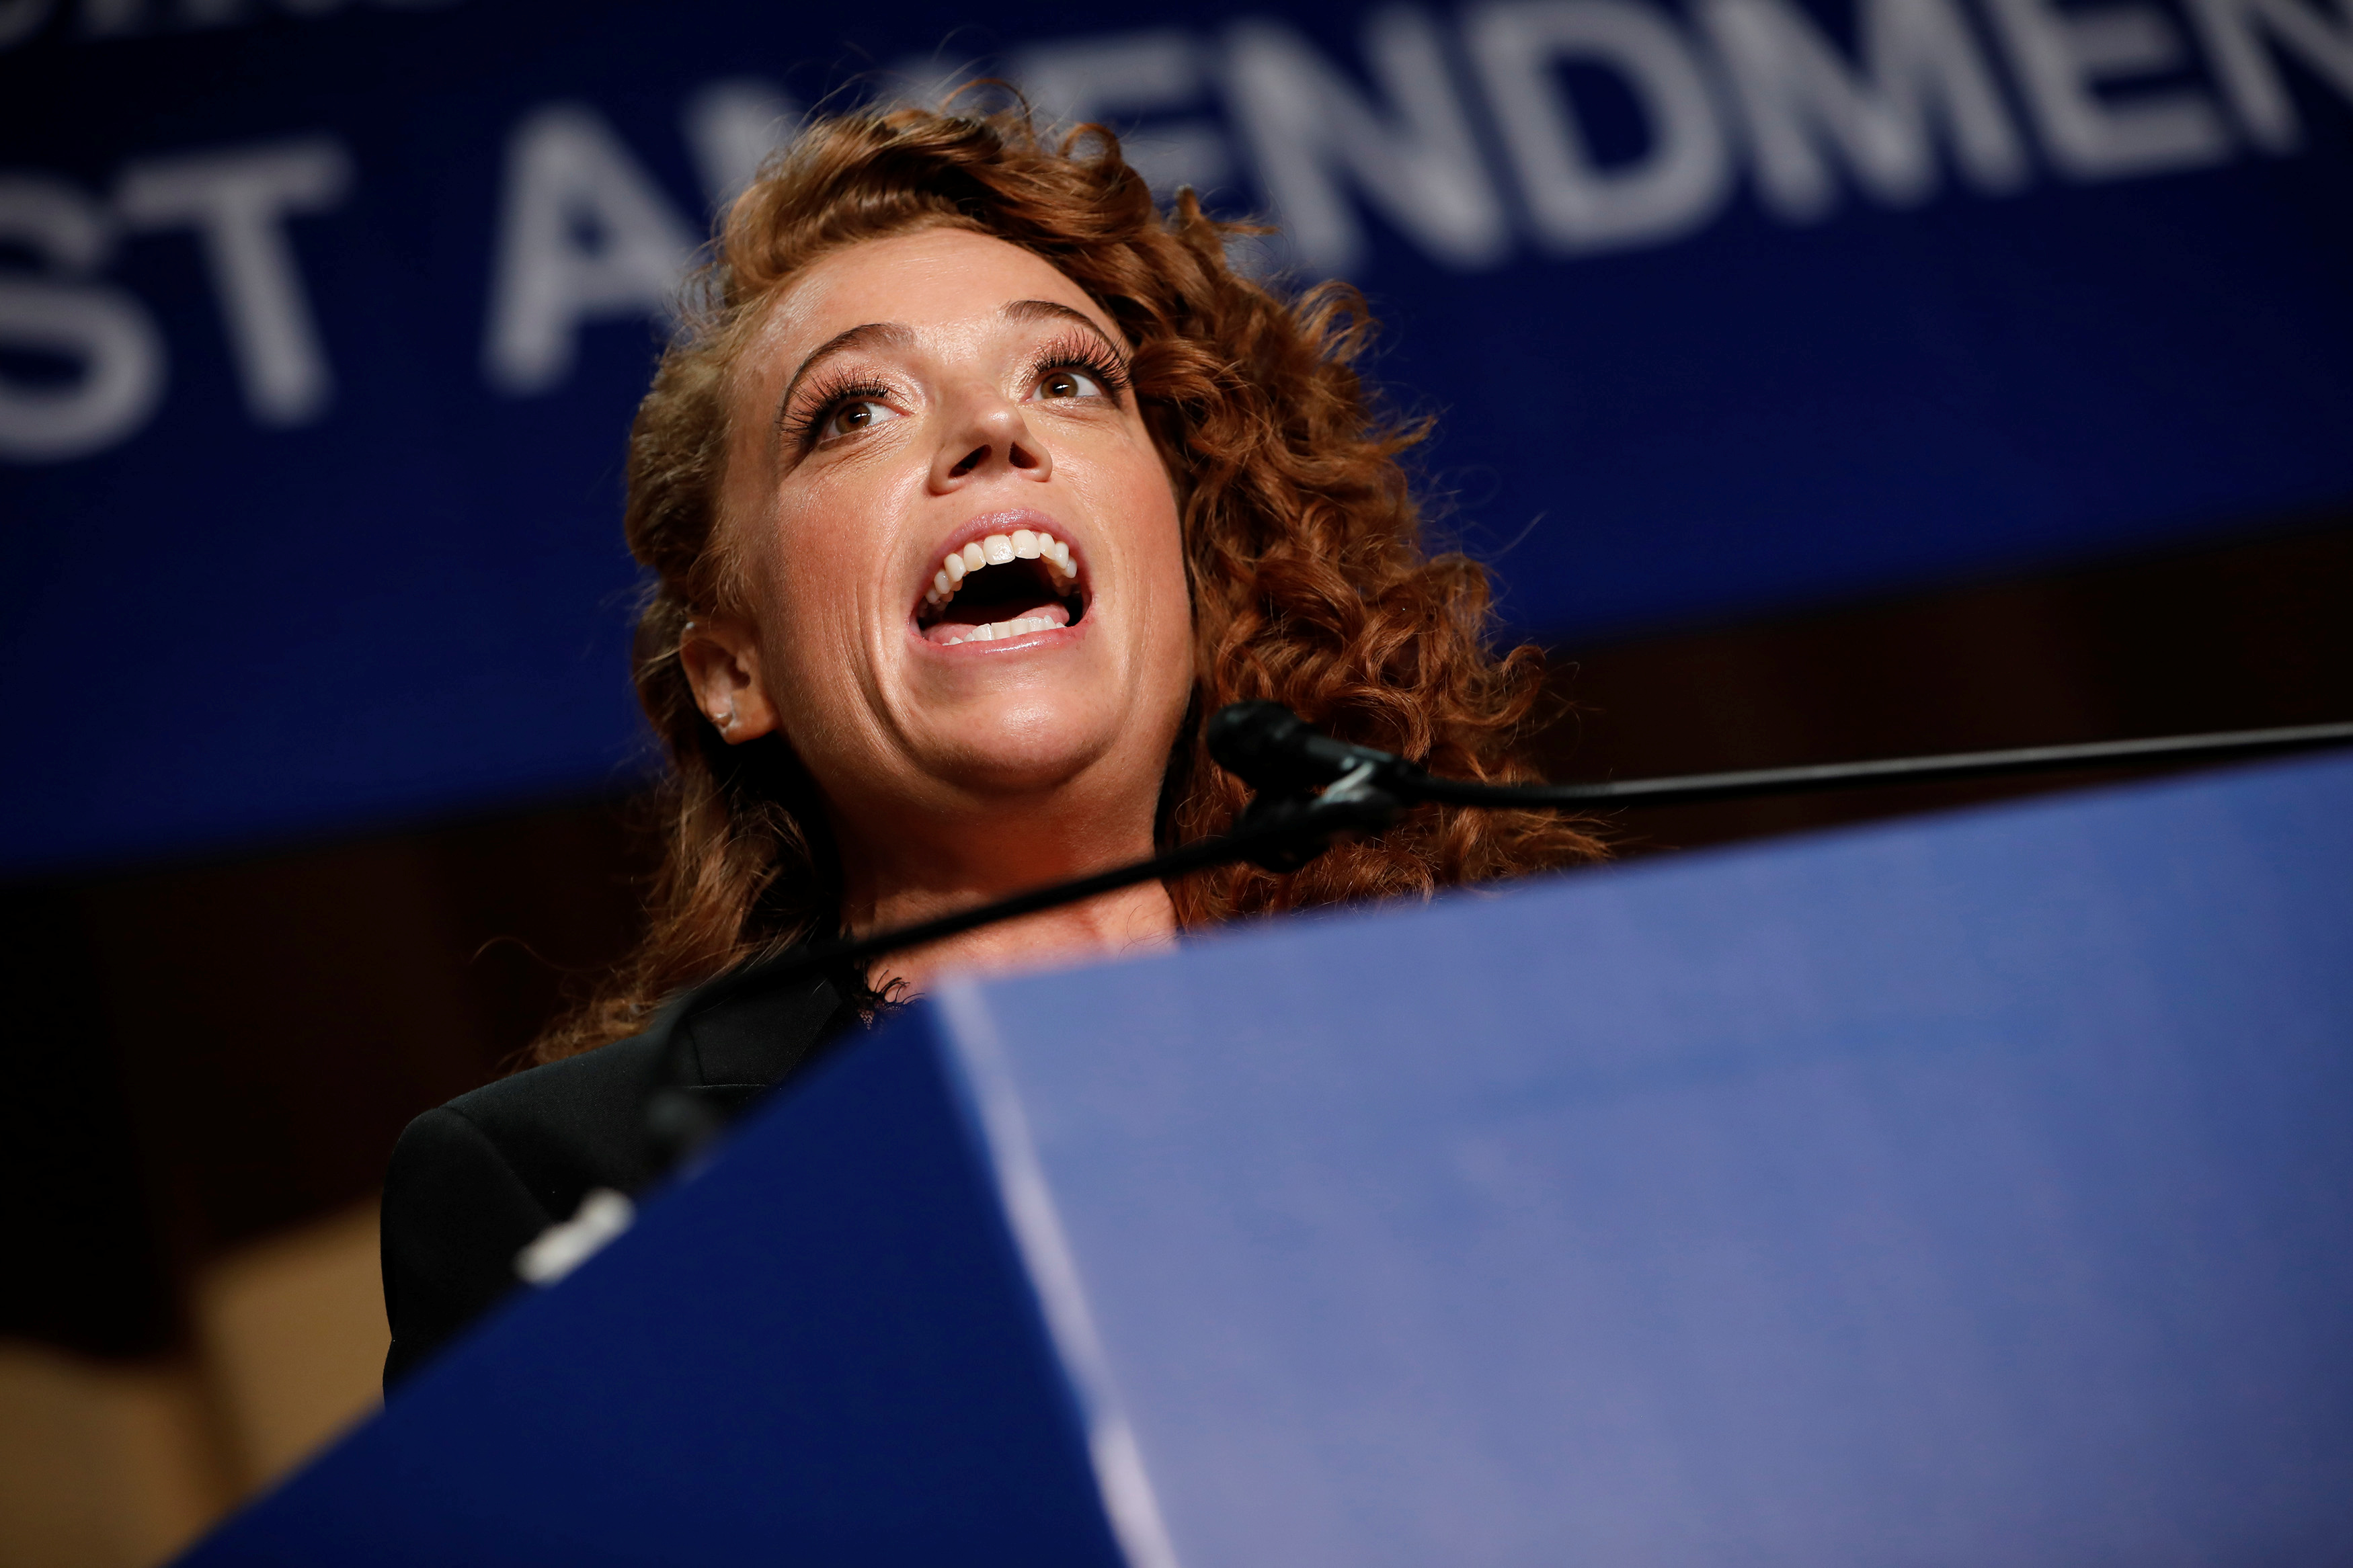 Comedian Michelle Wolf performs at the White House Correspondents' Association dinner in Washington, U.S., April 28, 2018. REUTERS/Aaron P. Bernstein - RC17C939DCE0